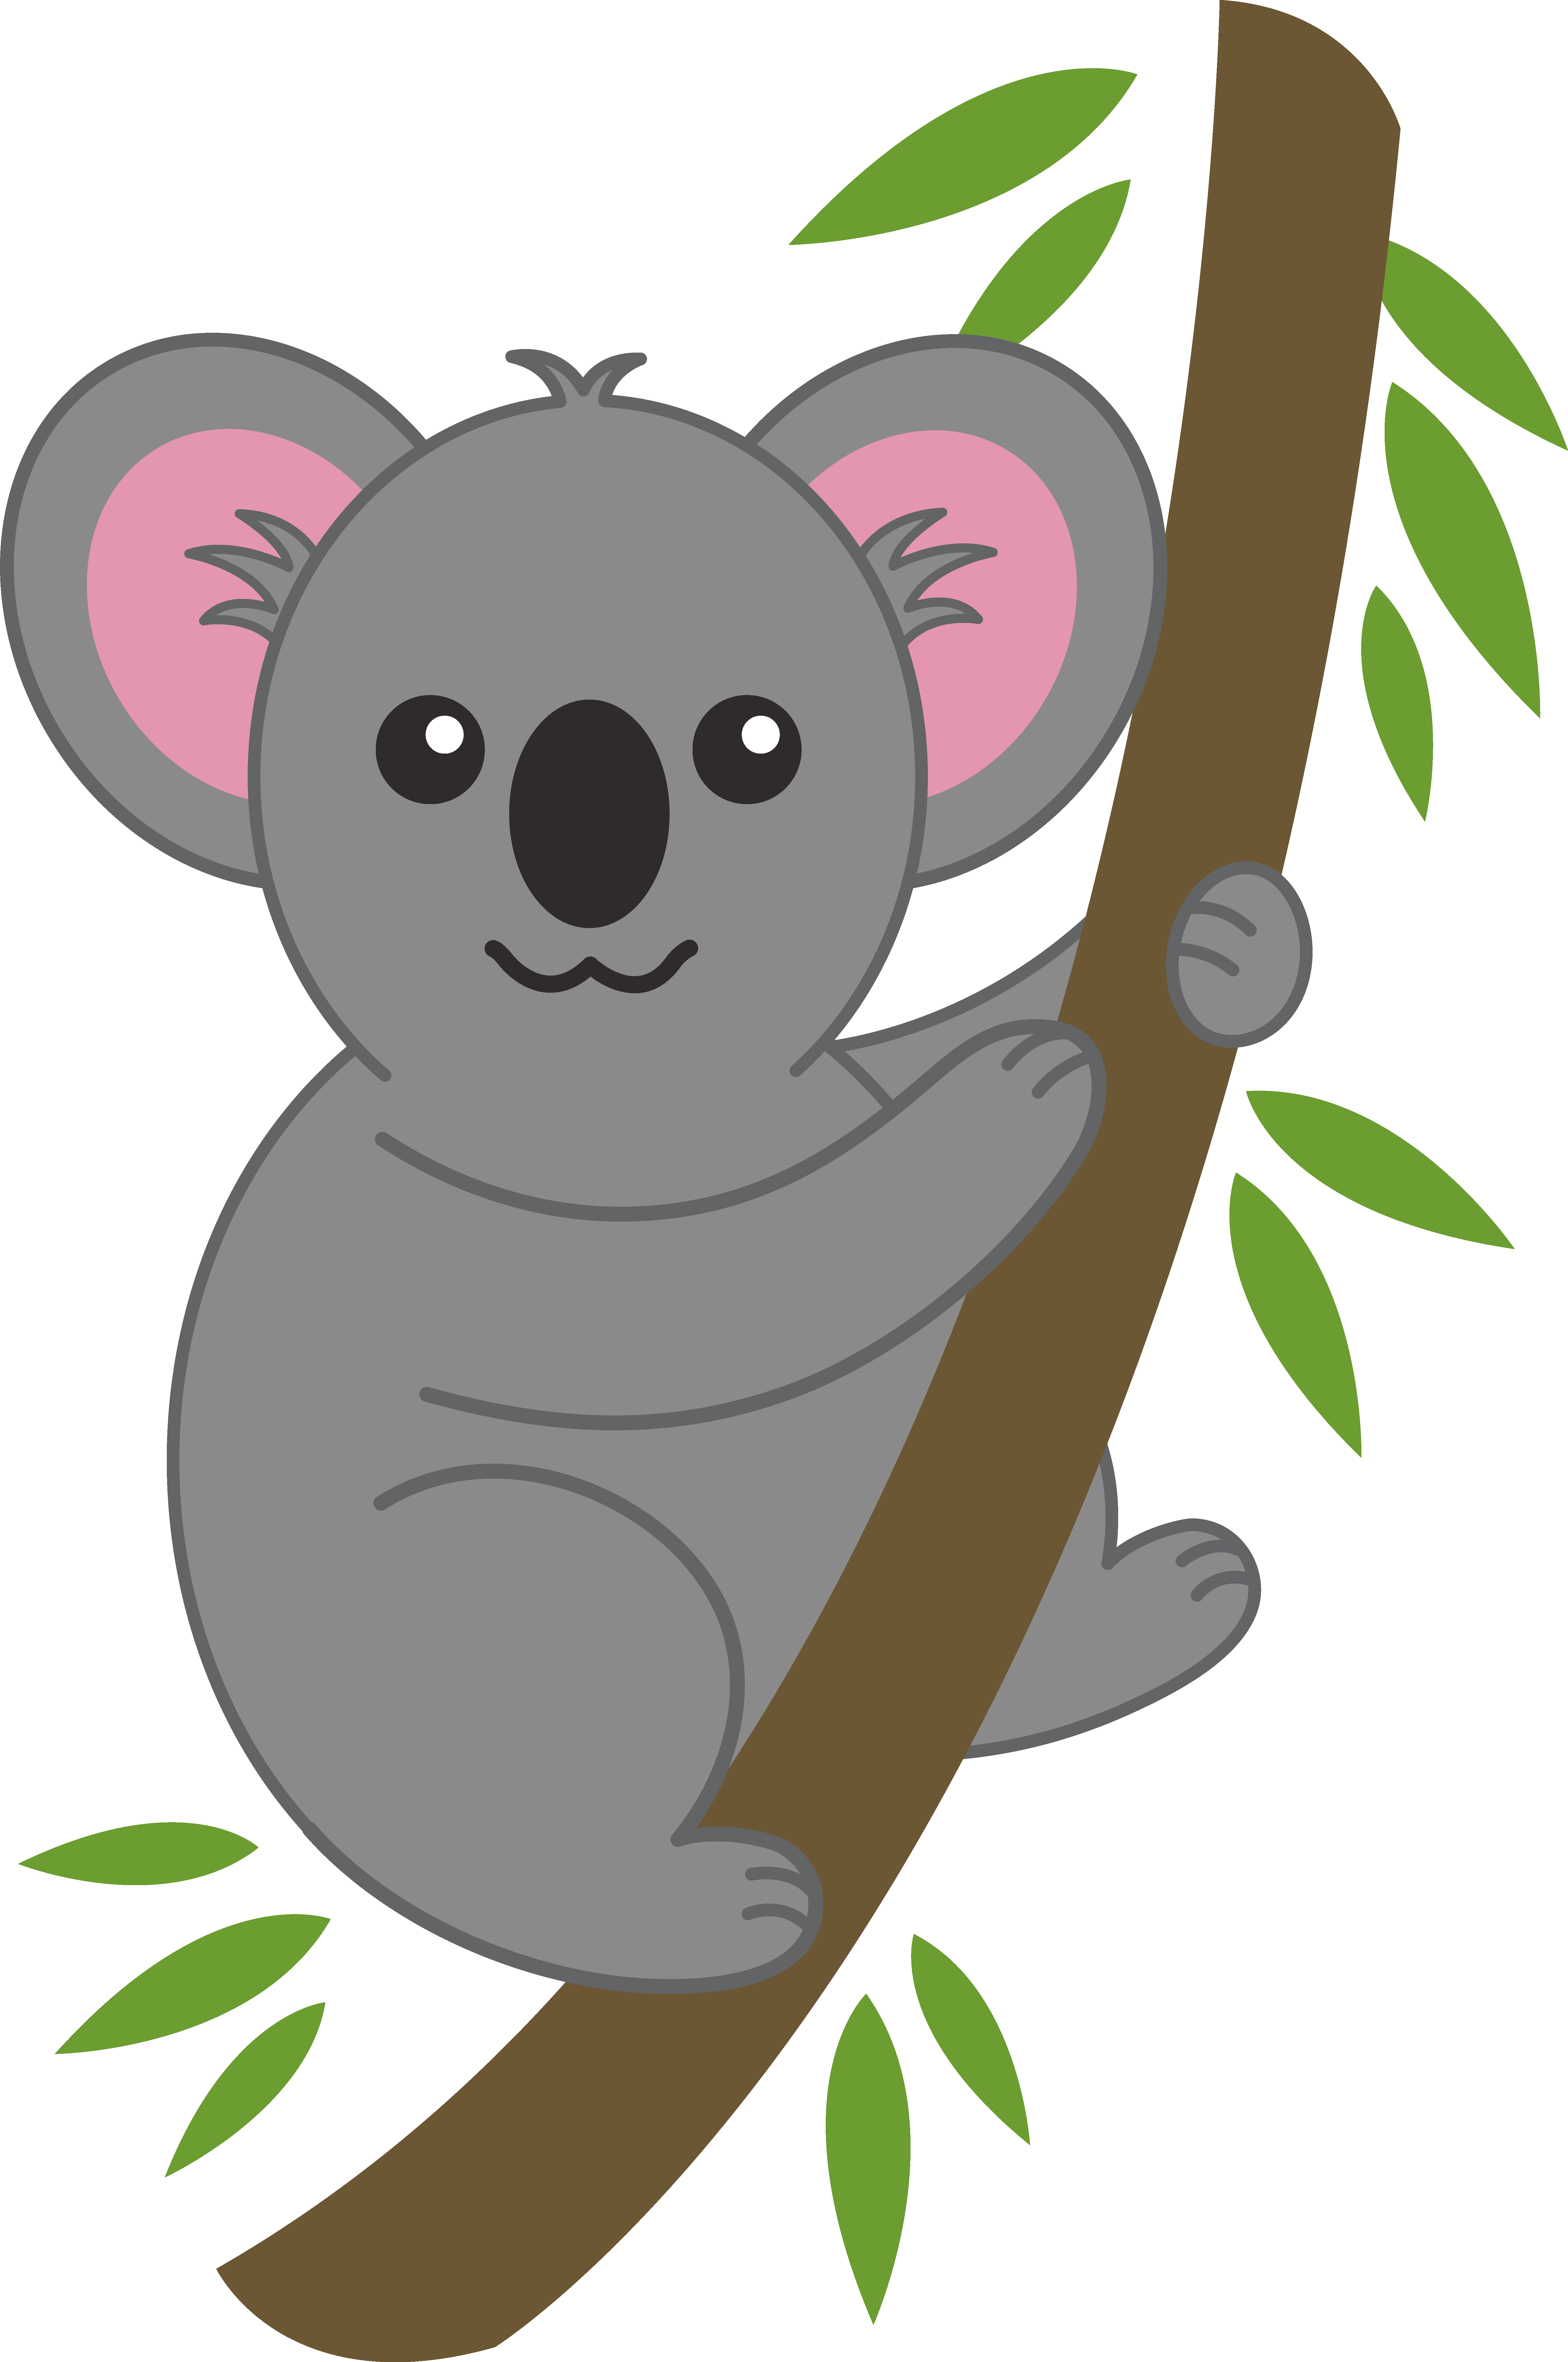 Kola crown clipart clip free 28+ Collection of Koala In A Tree Clipart | High quality, free ... clip free